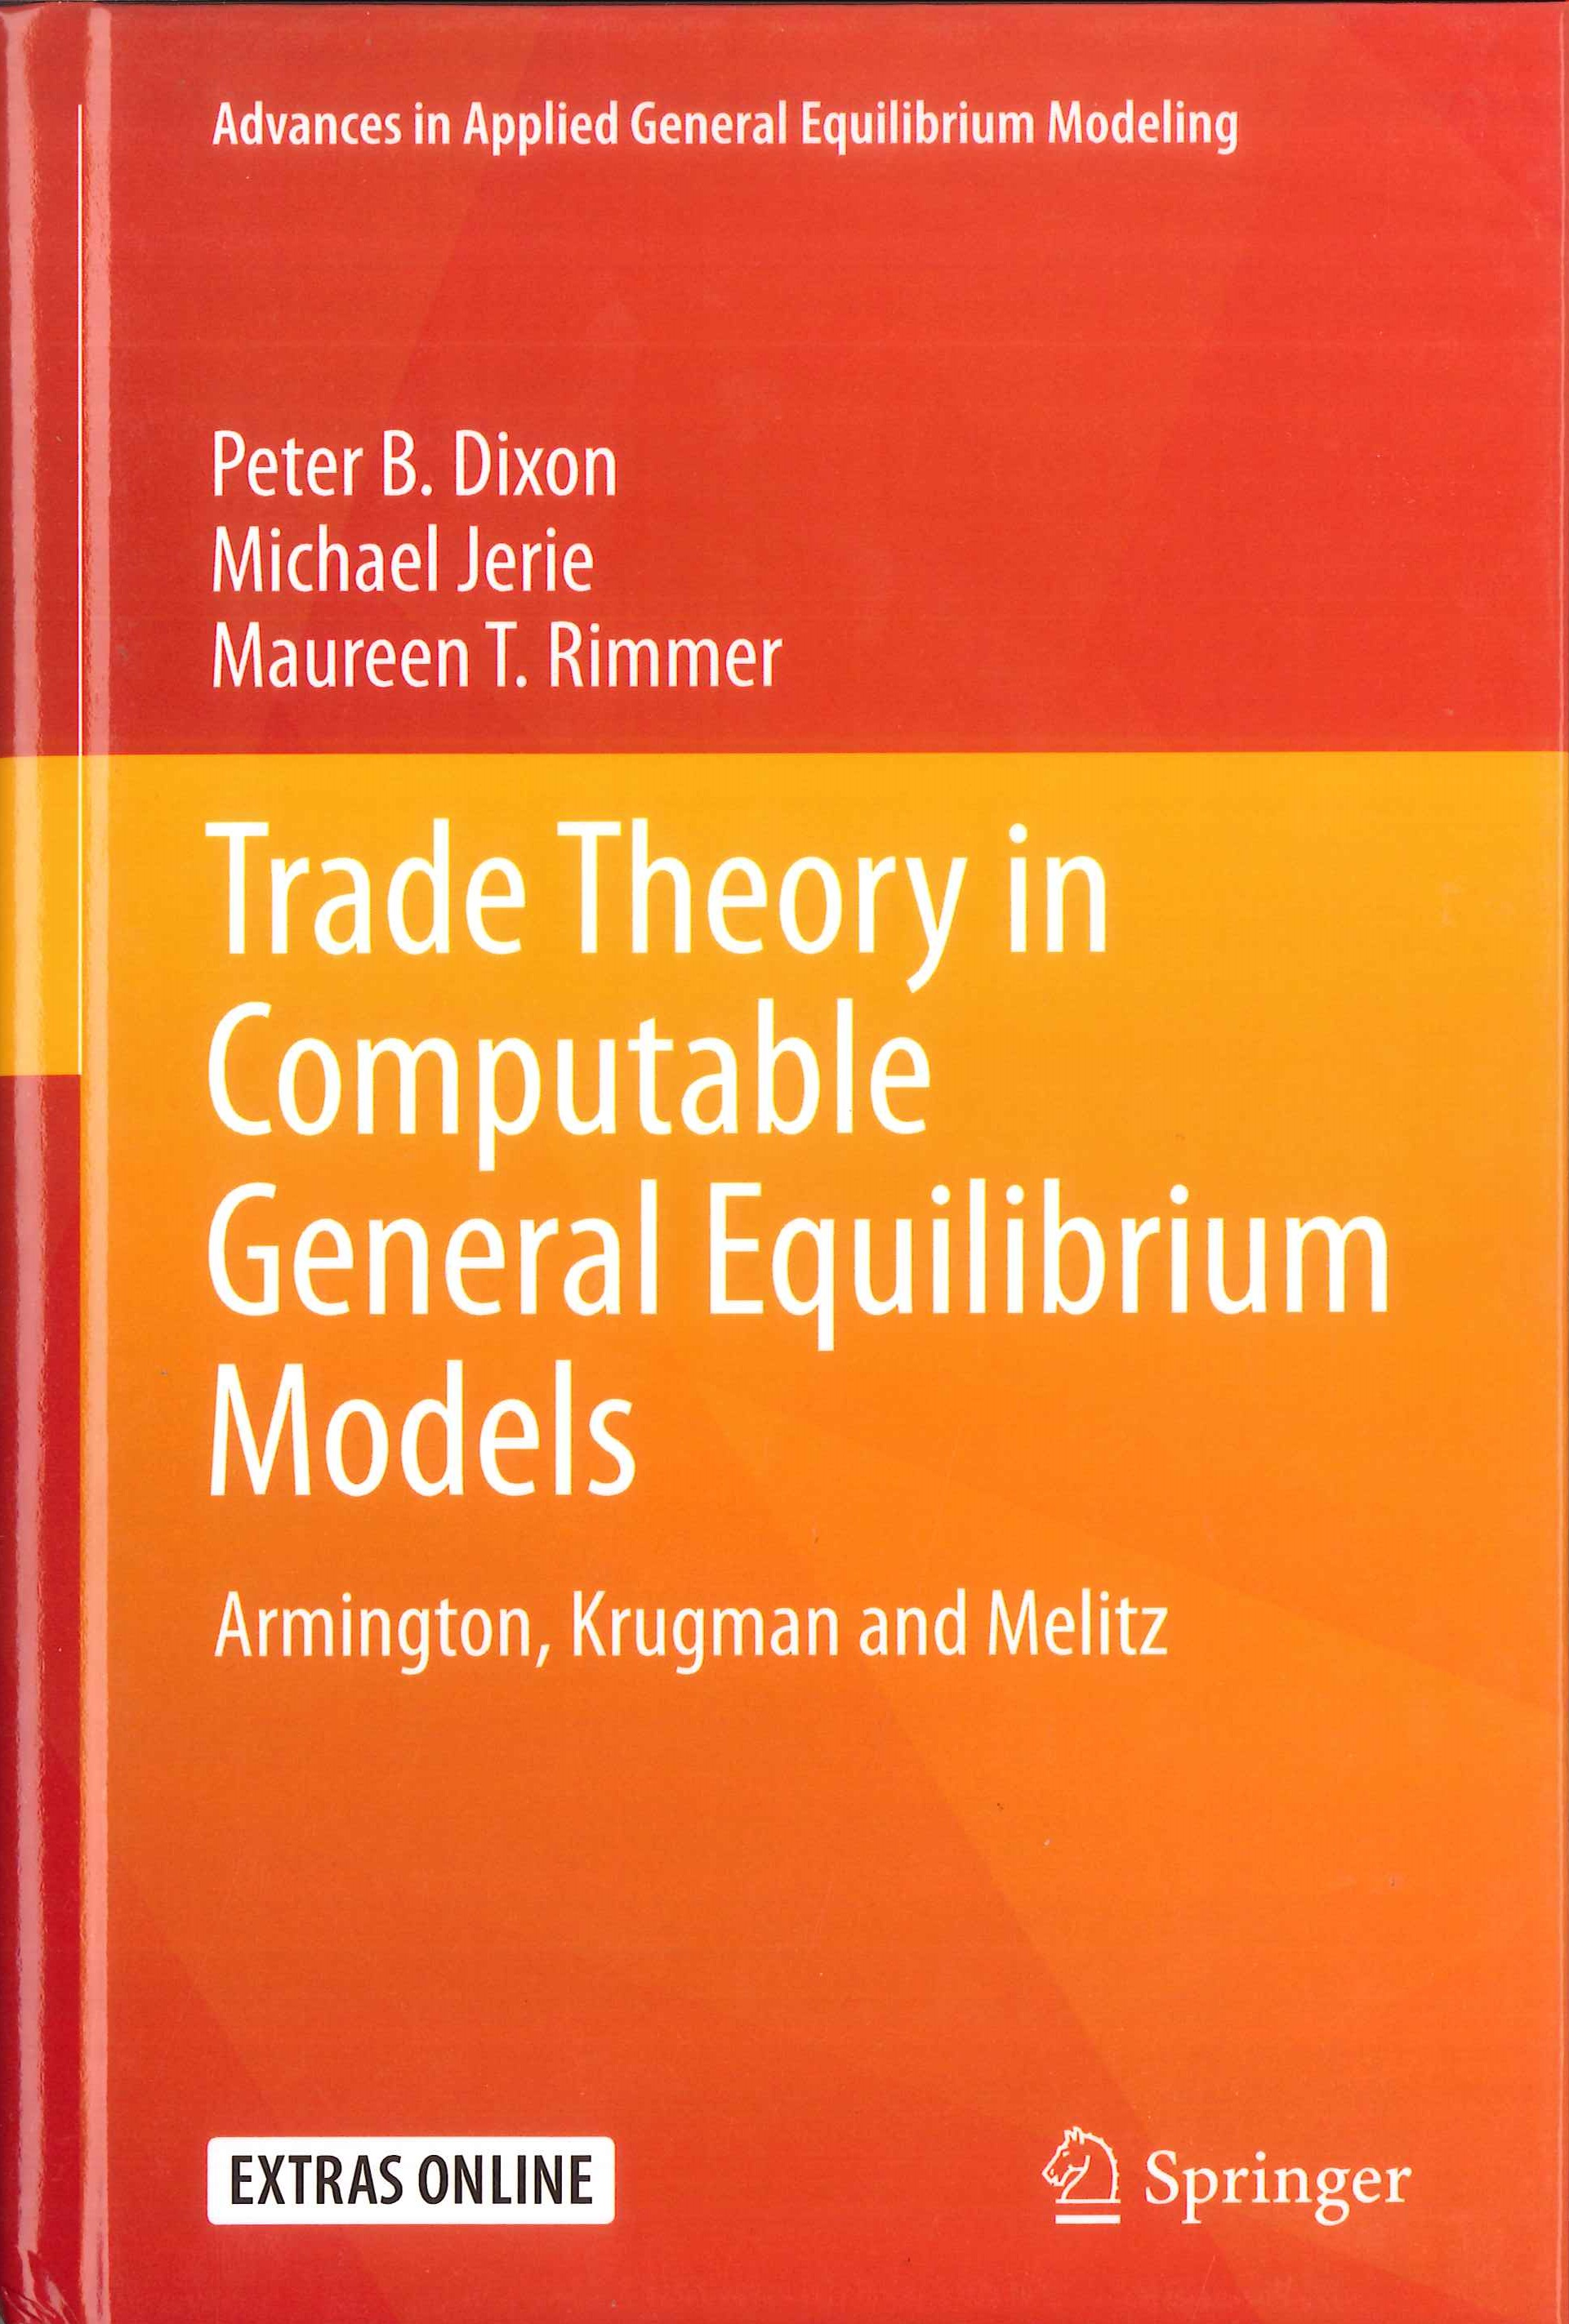 Trade theory in computable general equilibrium models:Armington, Krugman and Melitz